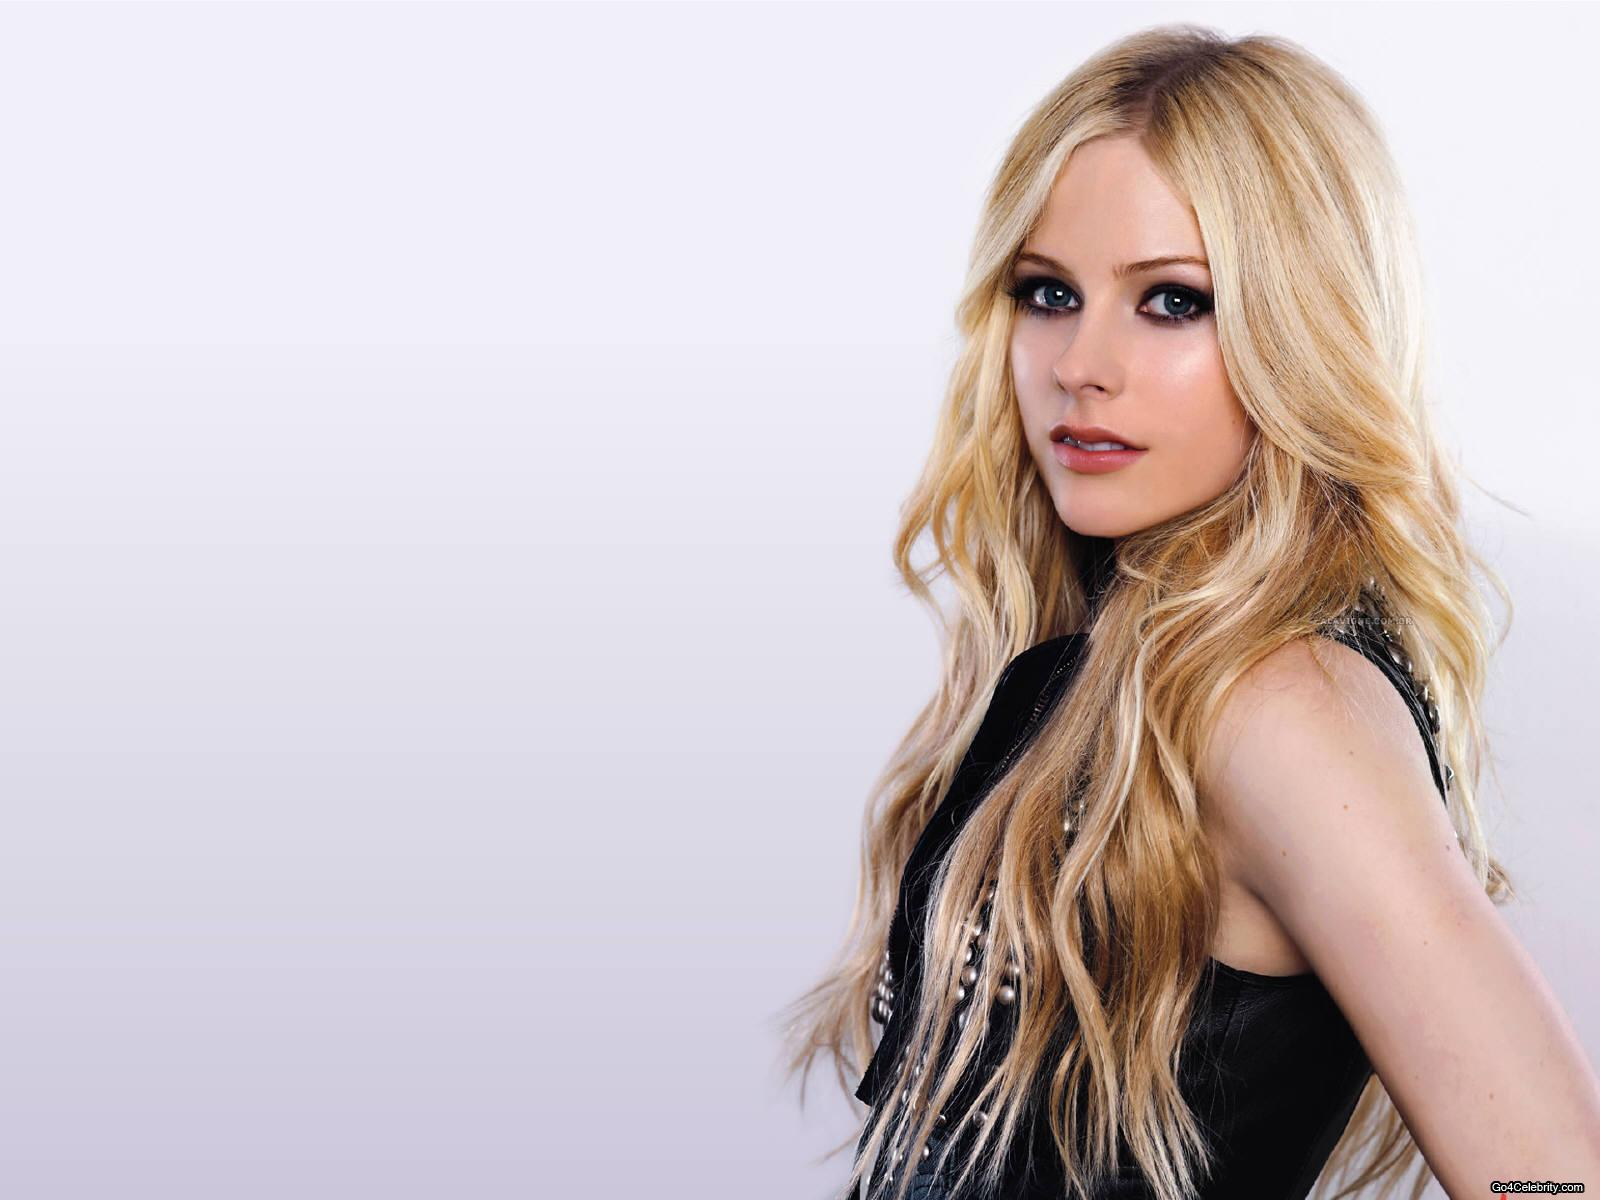 Hollywood Model Avril Lavigne Latest Hq Wallpaper Style Picture